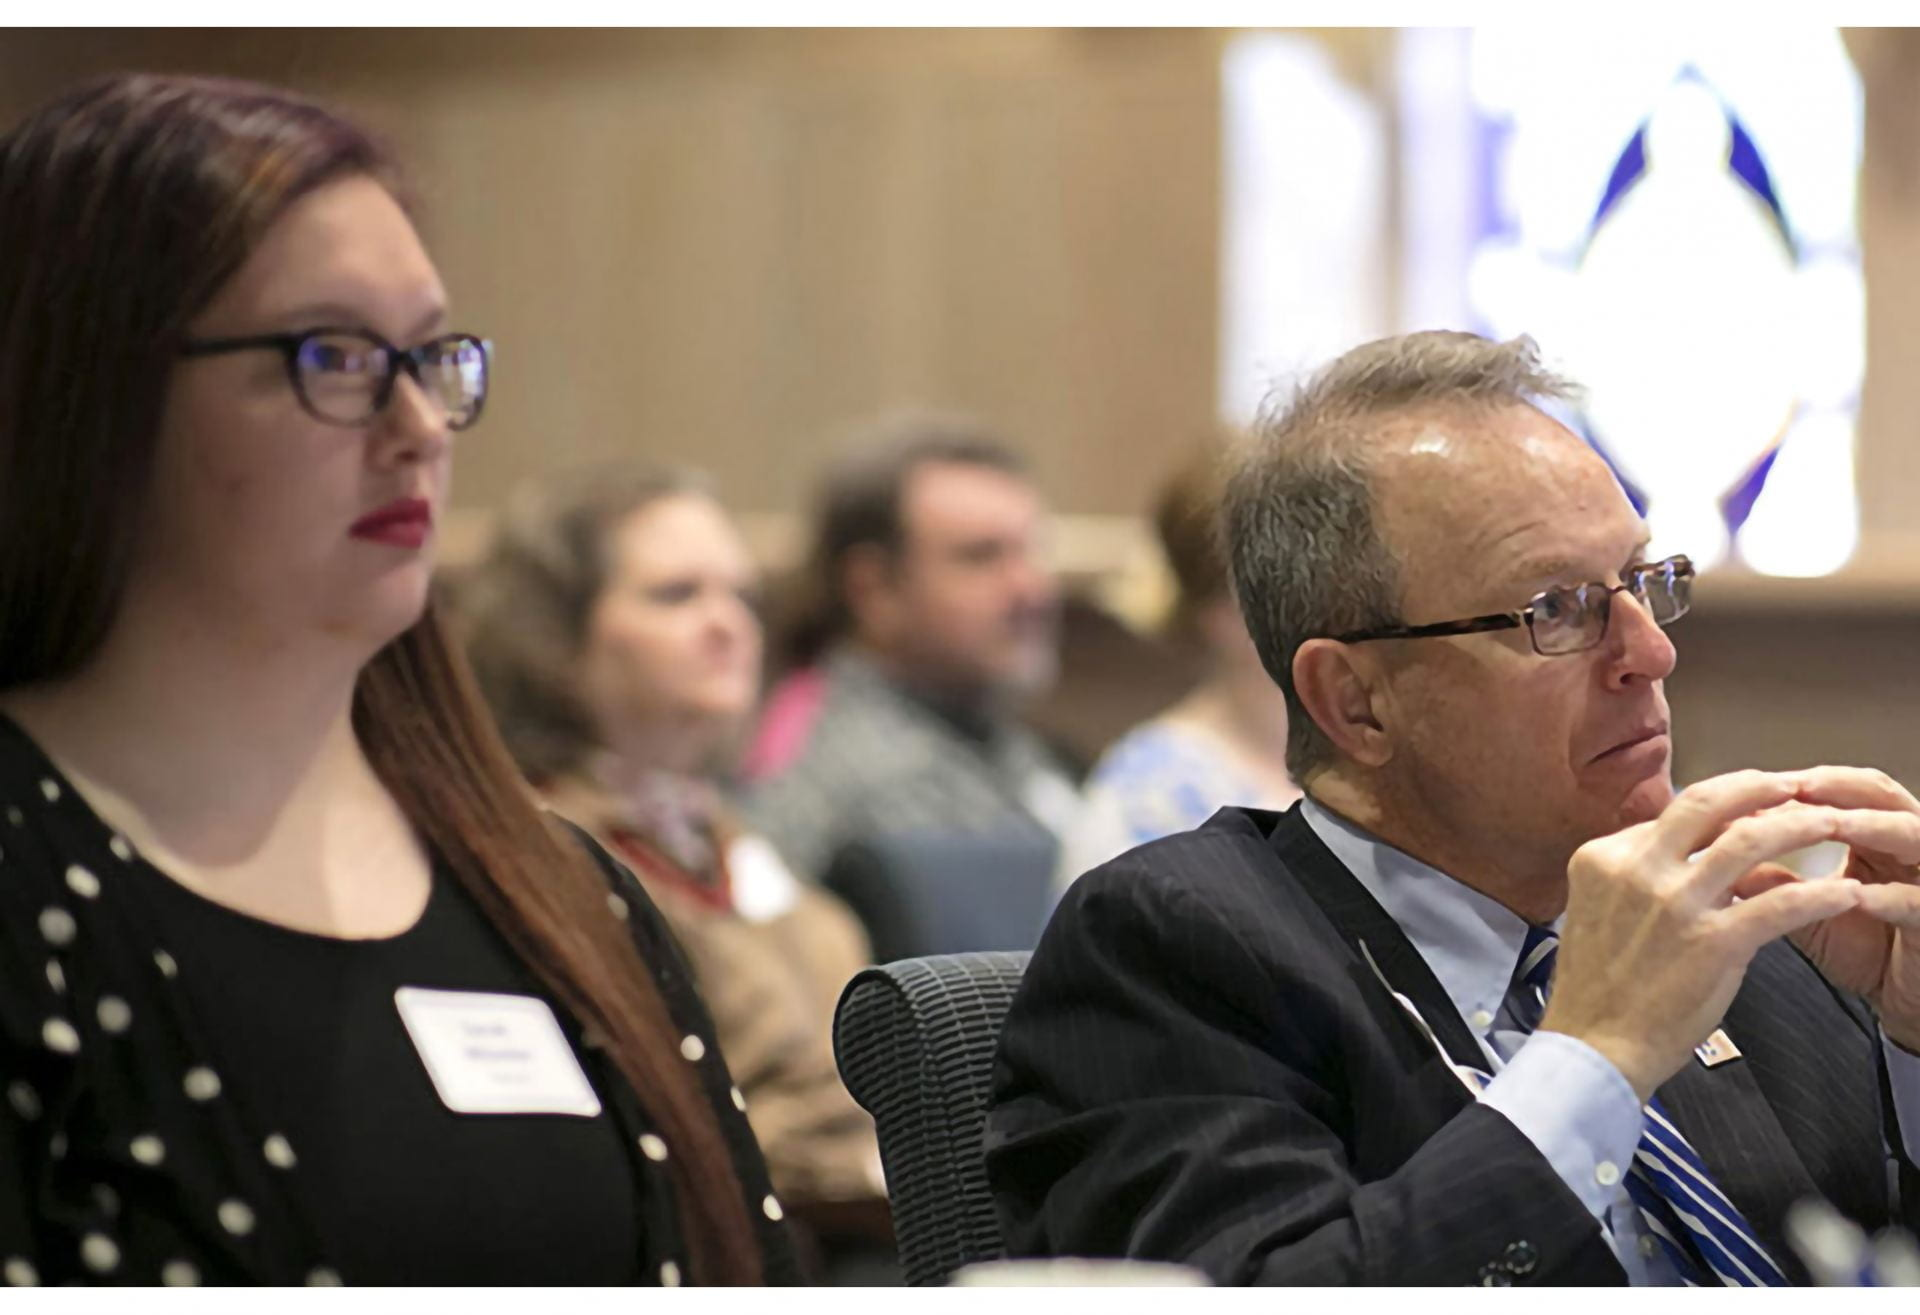 There are two individuals sitting at a table very attentive to an ongoing showcase.